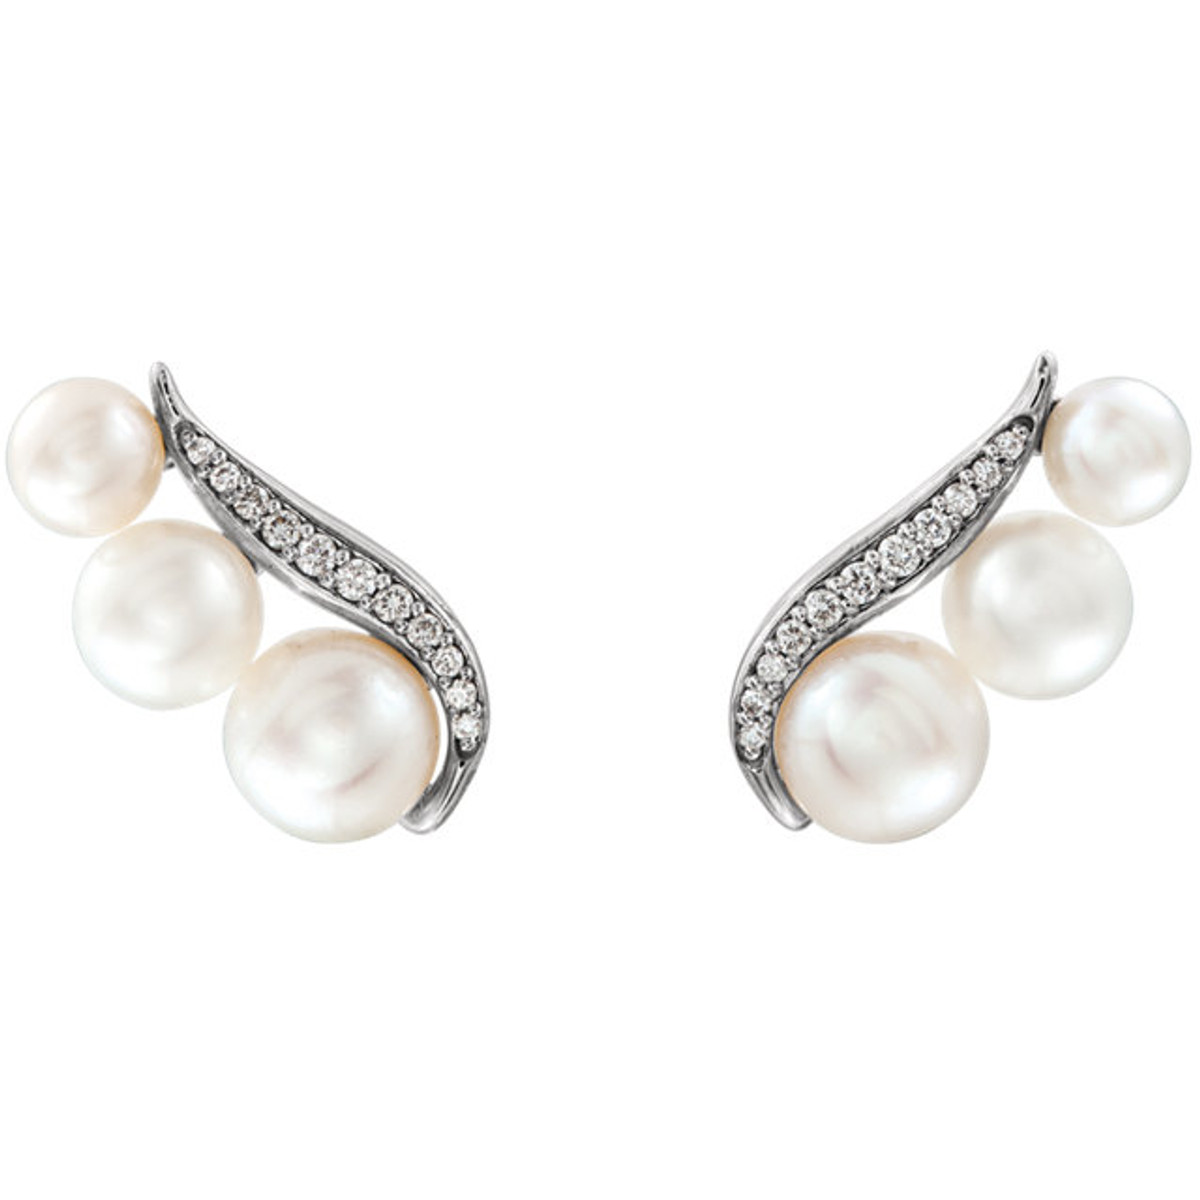 White Gold Freshwater Pearl & Diamond Earrings